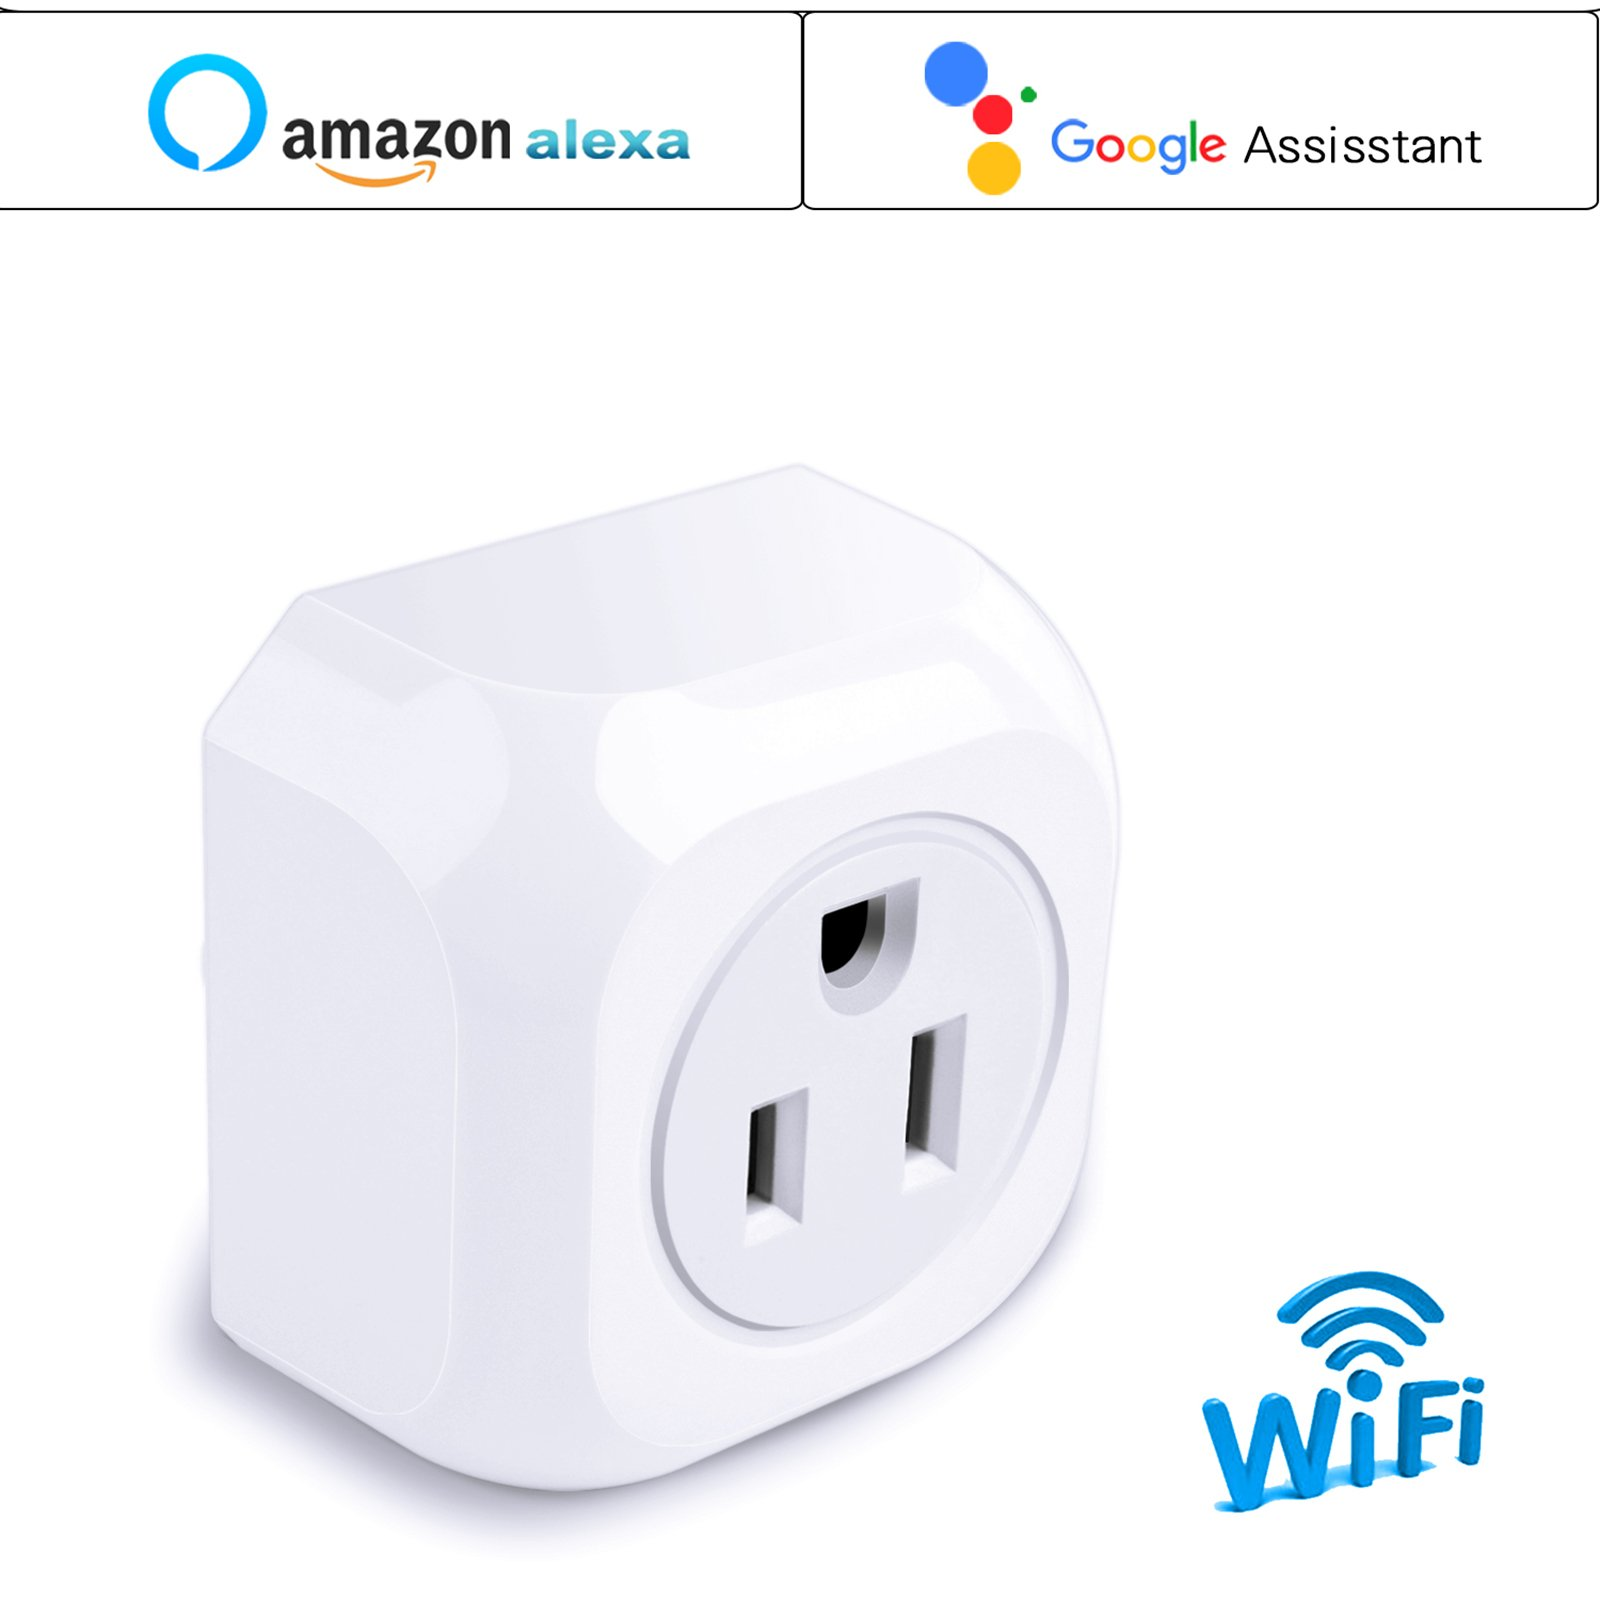 KOOTION 4 Pack Wifi Smart Plug Mini Outlet with Energy Monitoring, Compatible with Alexa Echo and Google Assistant, No Hub Required, ETL Listed, White by KOOTION (Image #8)